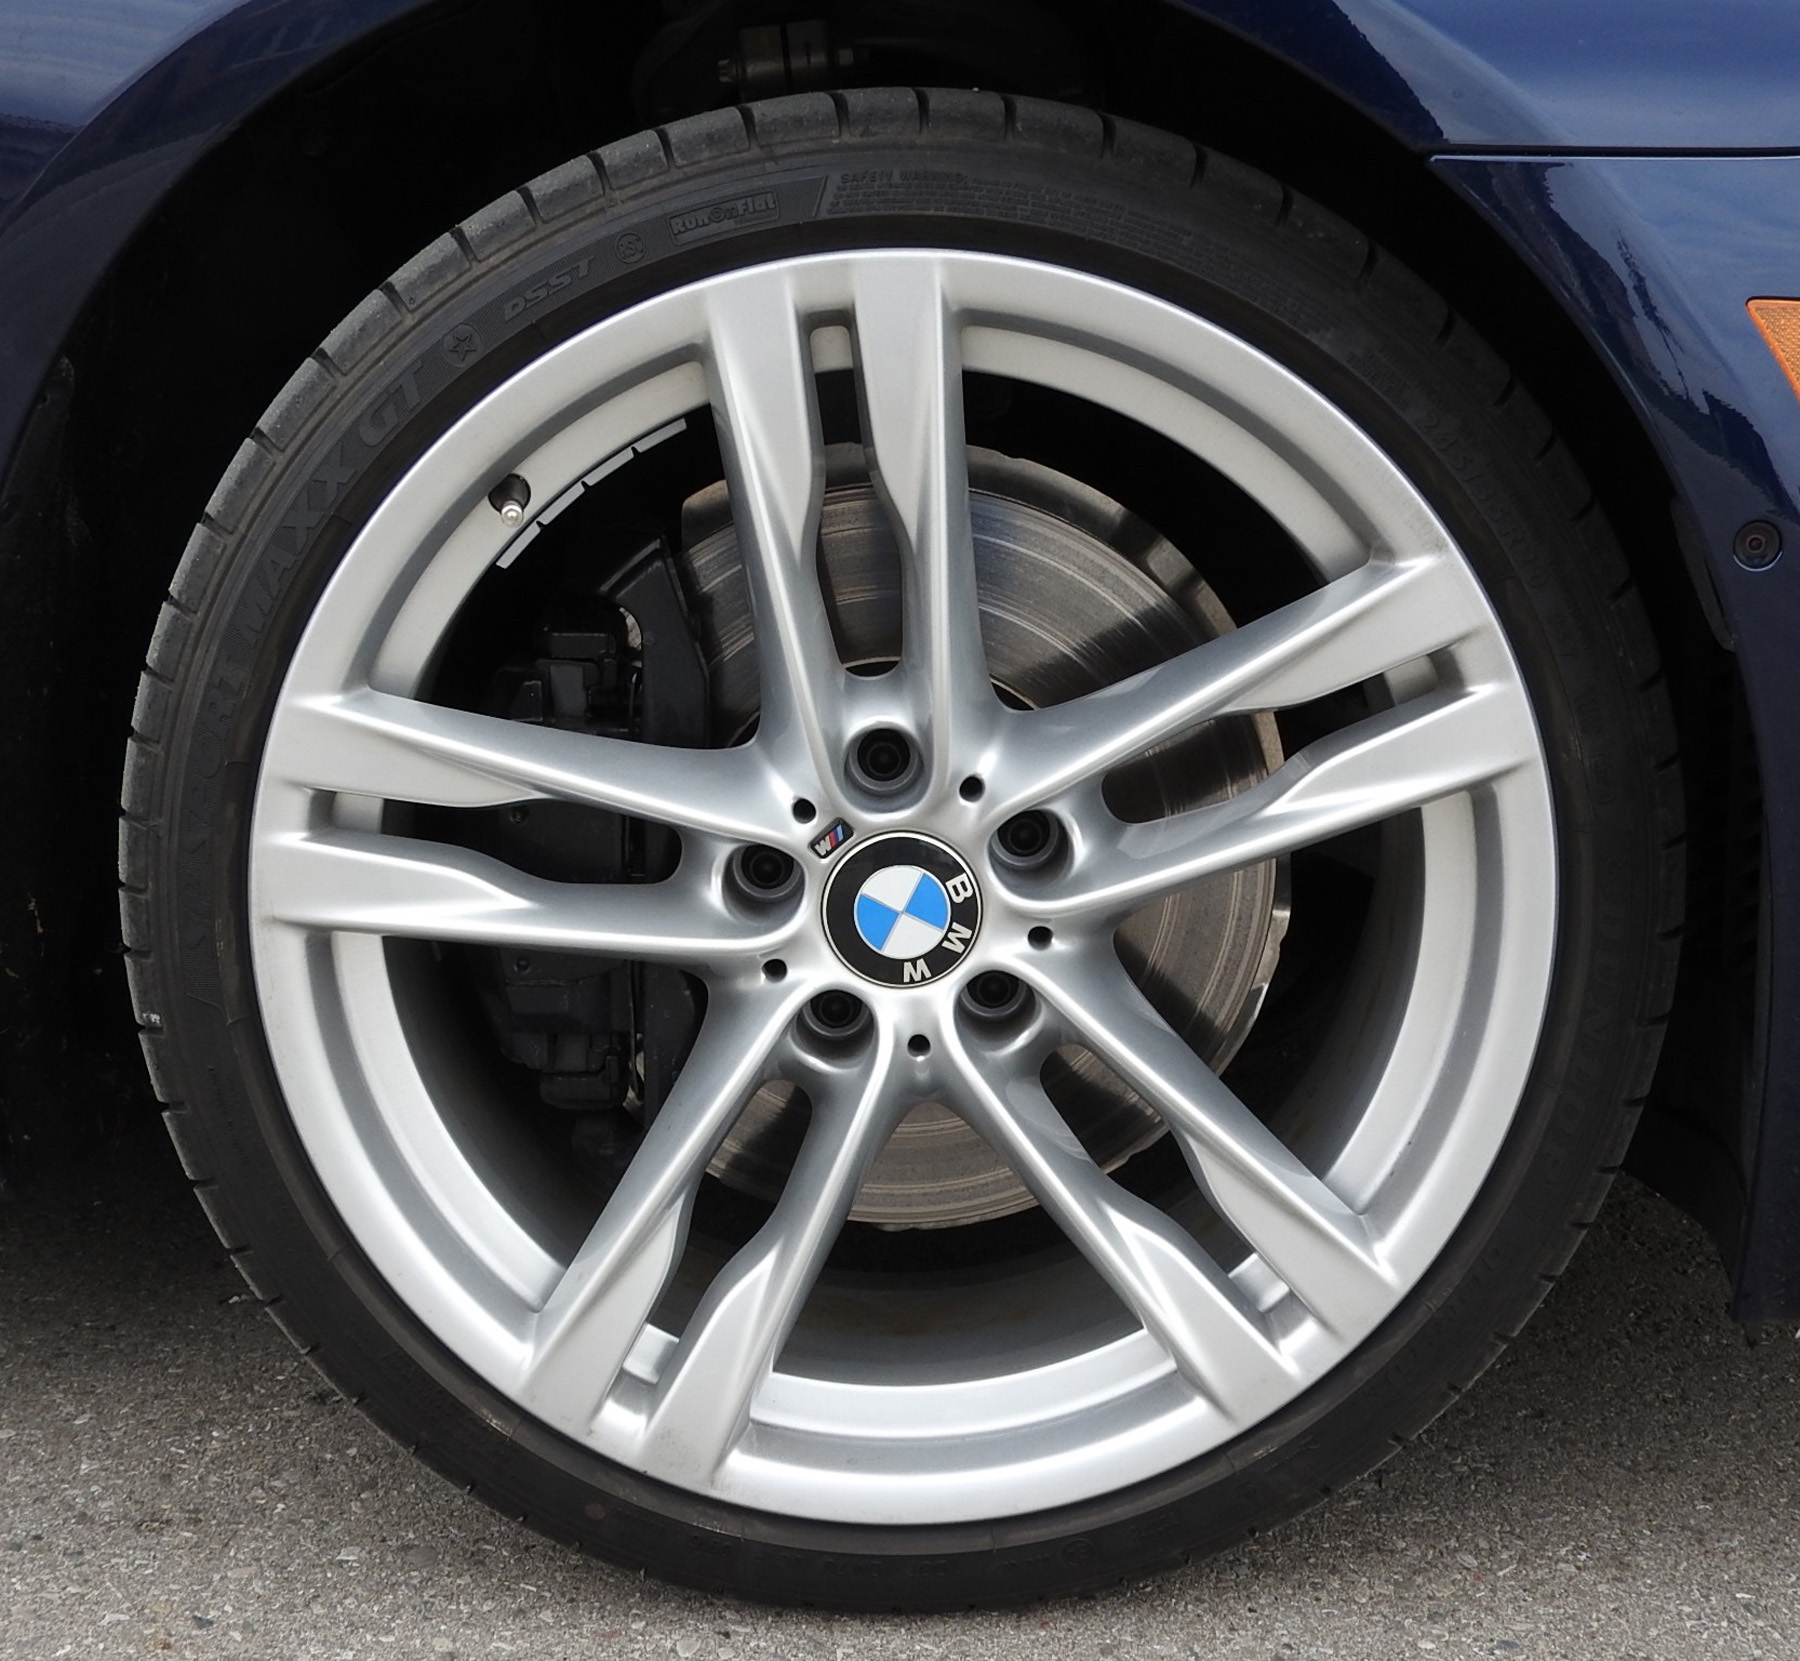 Bmw 6501 Price: It's All About Luxury And Power